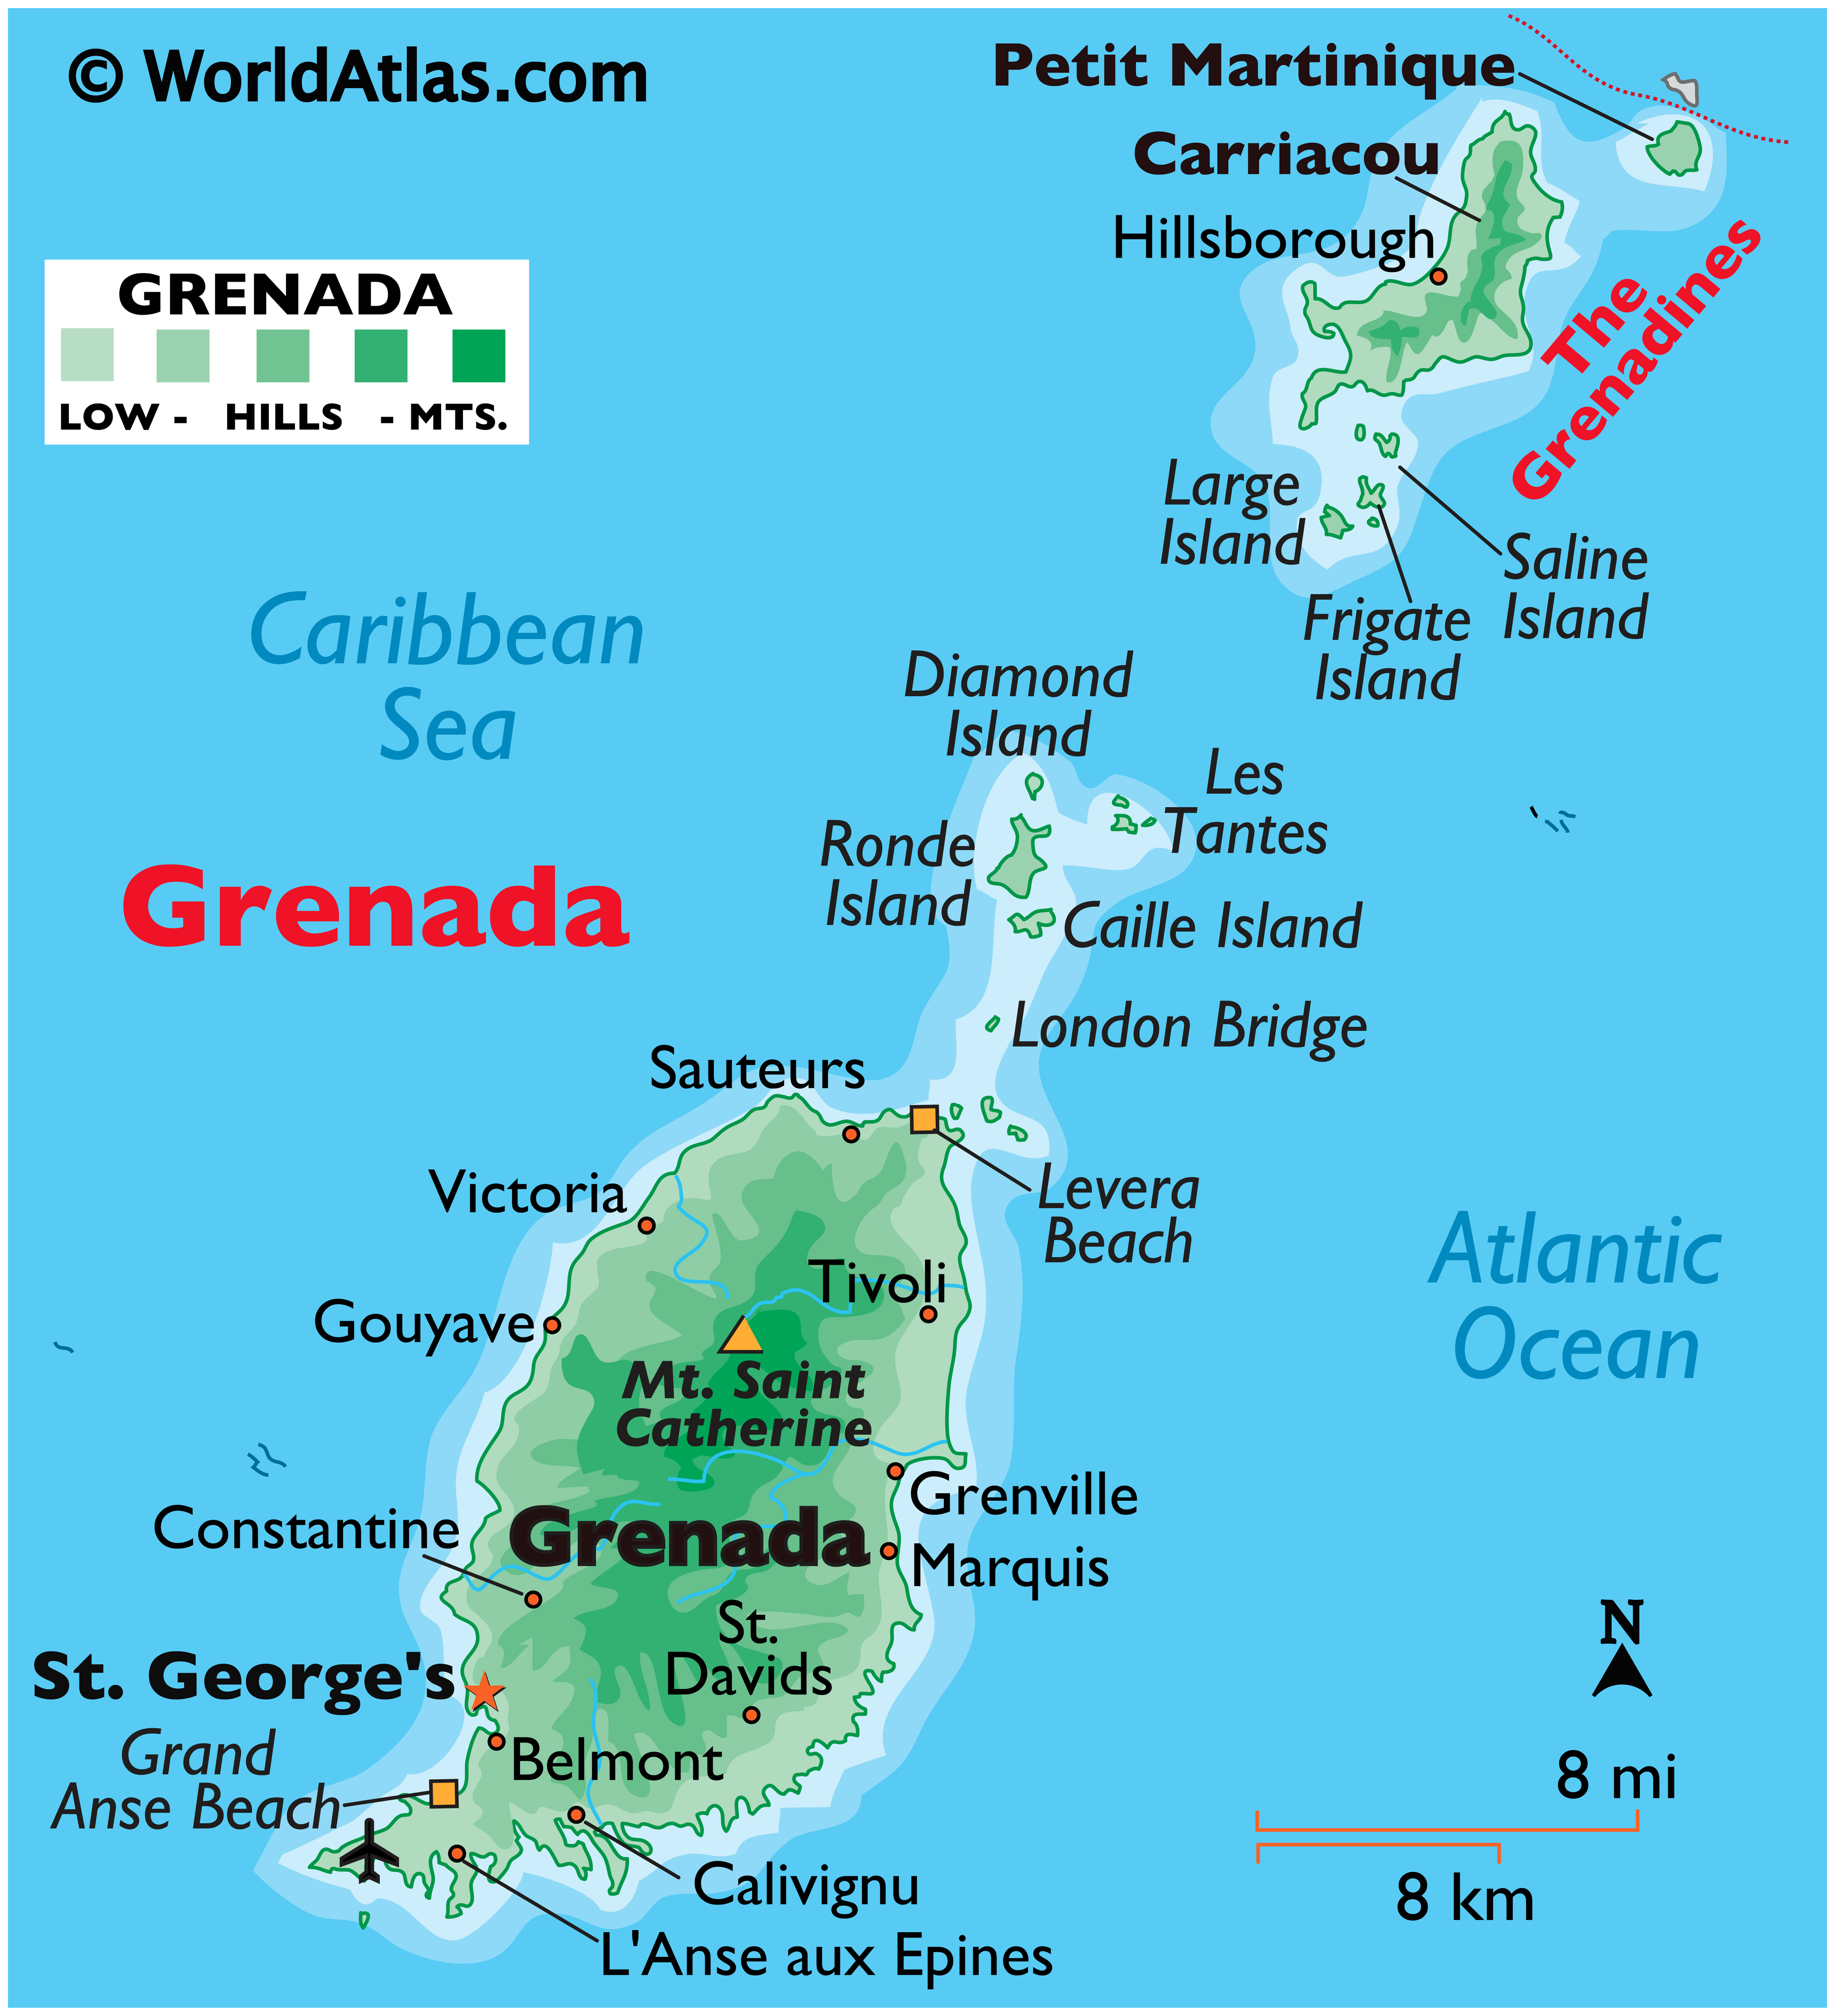 Physical Map of Grenada showing major islands, terrain, highest point, important settlements, beaches, etc.